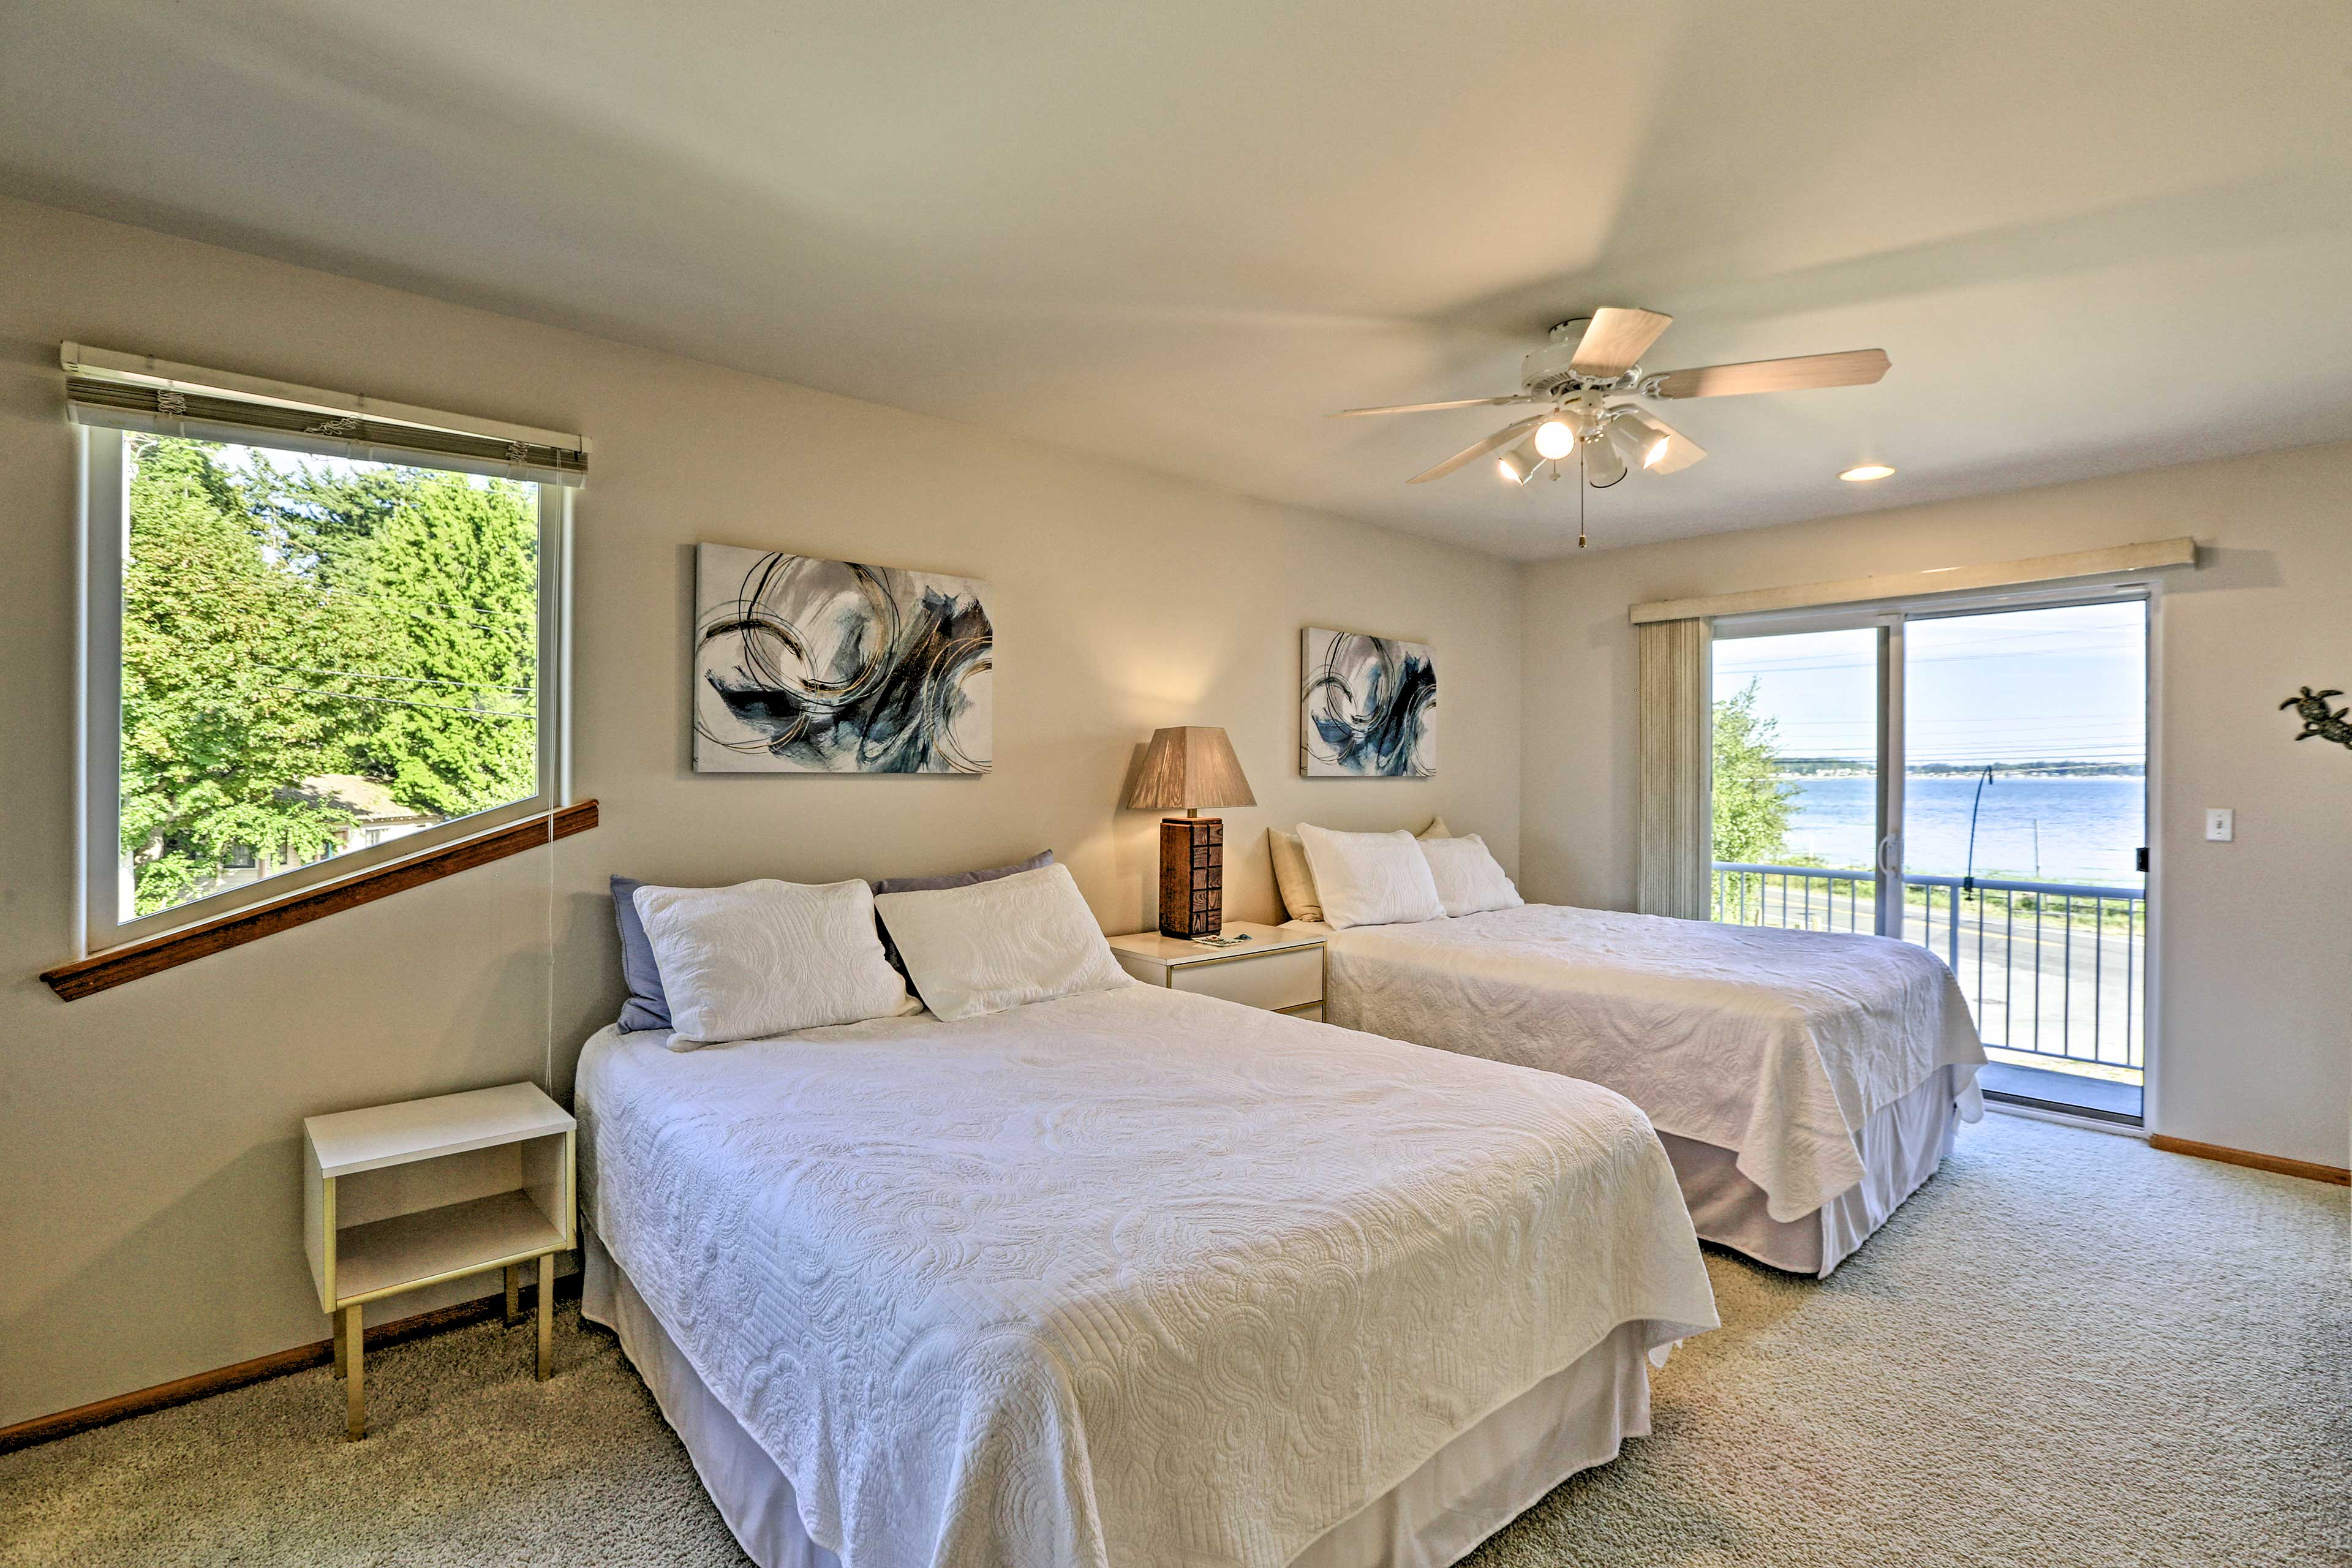 Sleep four in this bright bedroom with two queen beds.